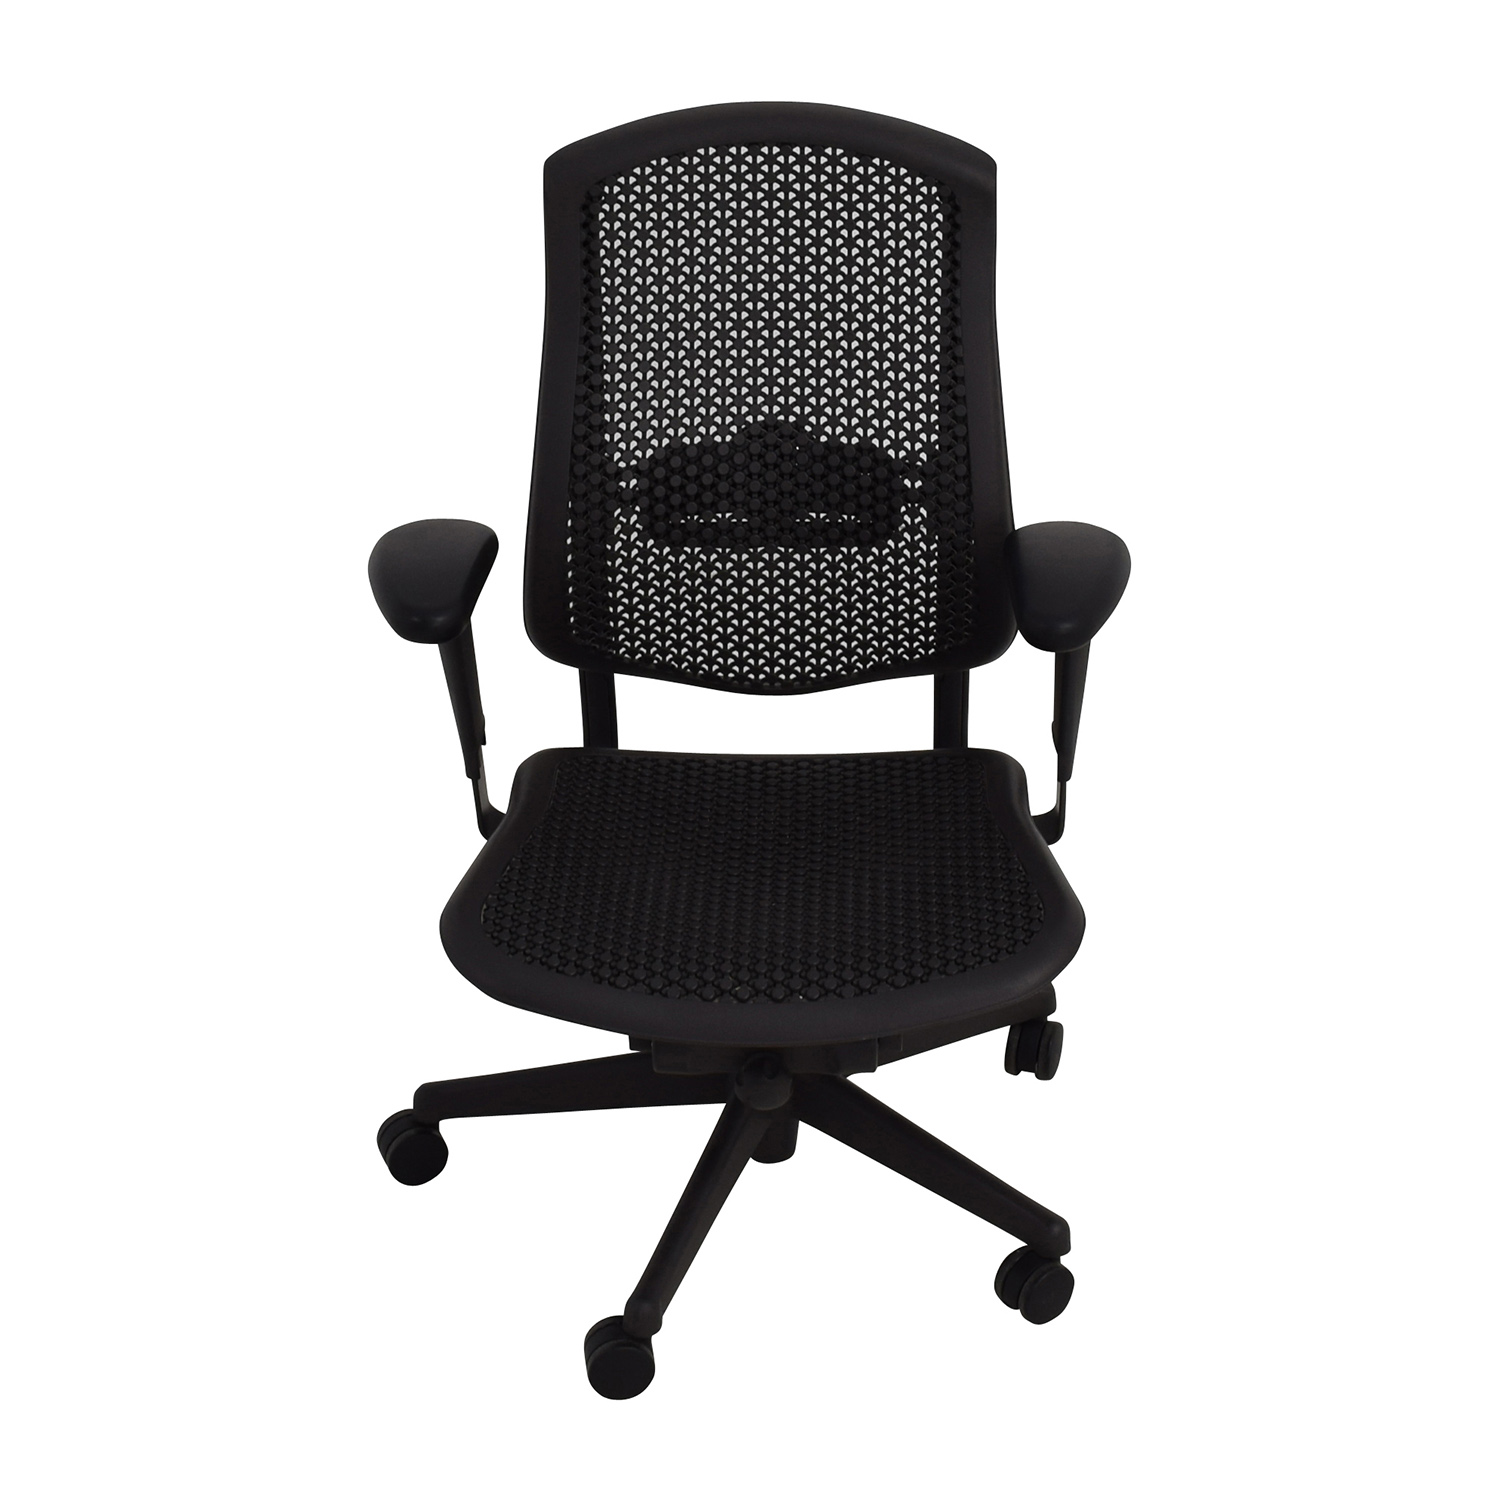 desk chair herman miller kids chairs target luxury office rtty1